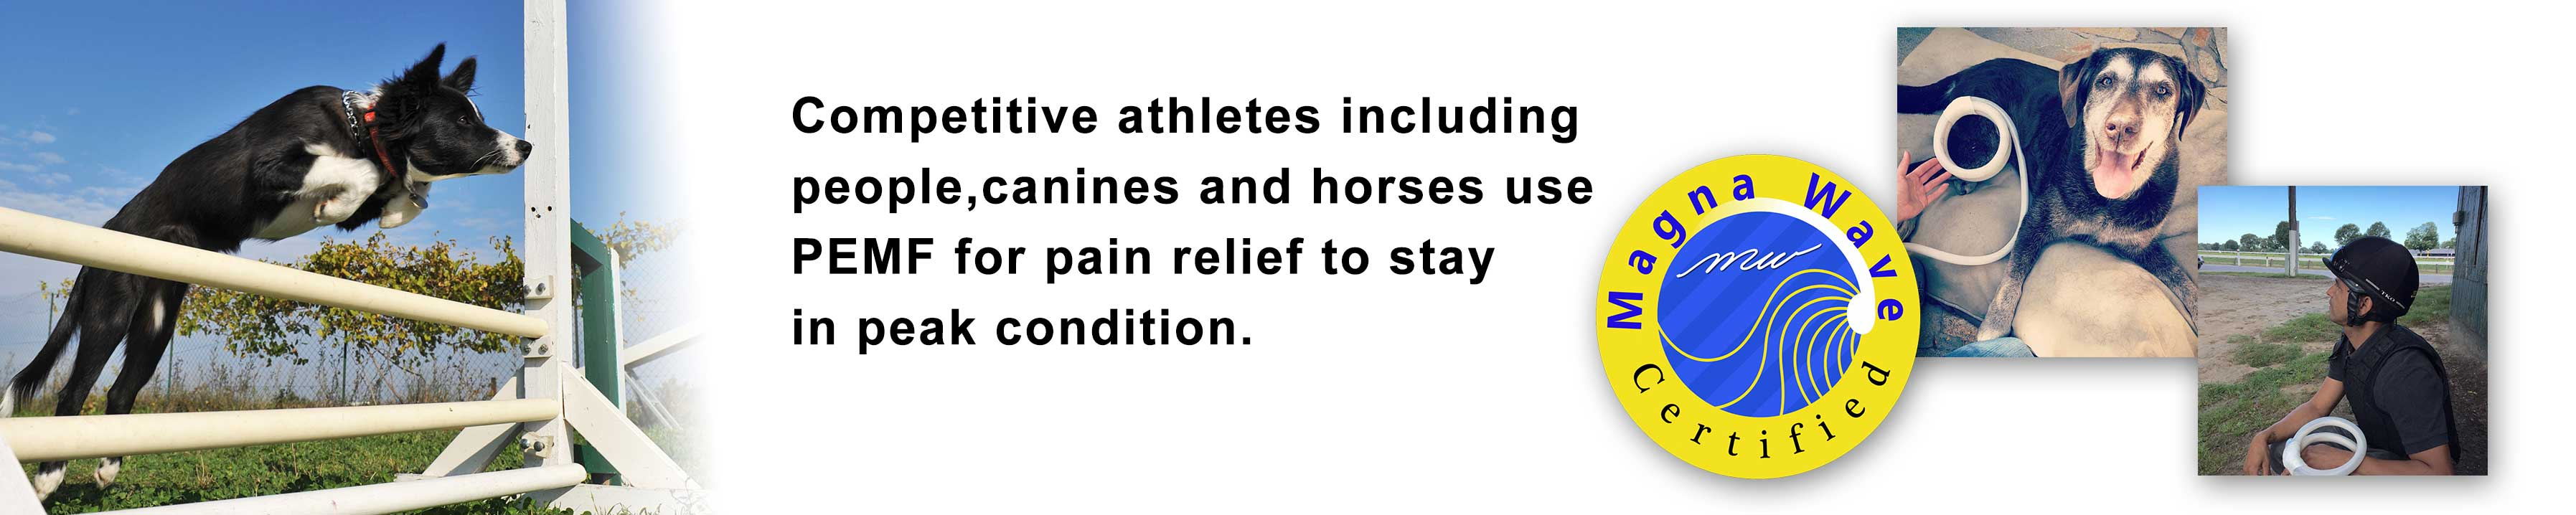 Competitive athletes including people, canines and horses use PEMF for pain relief to stay in peak condition